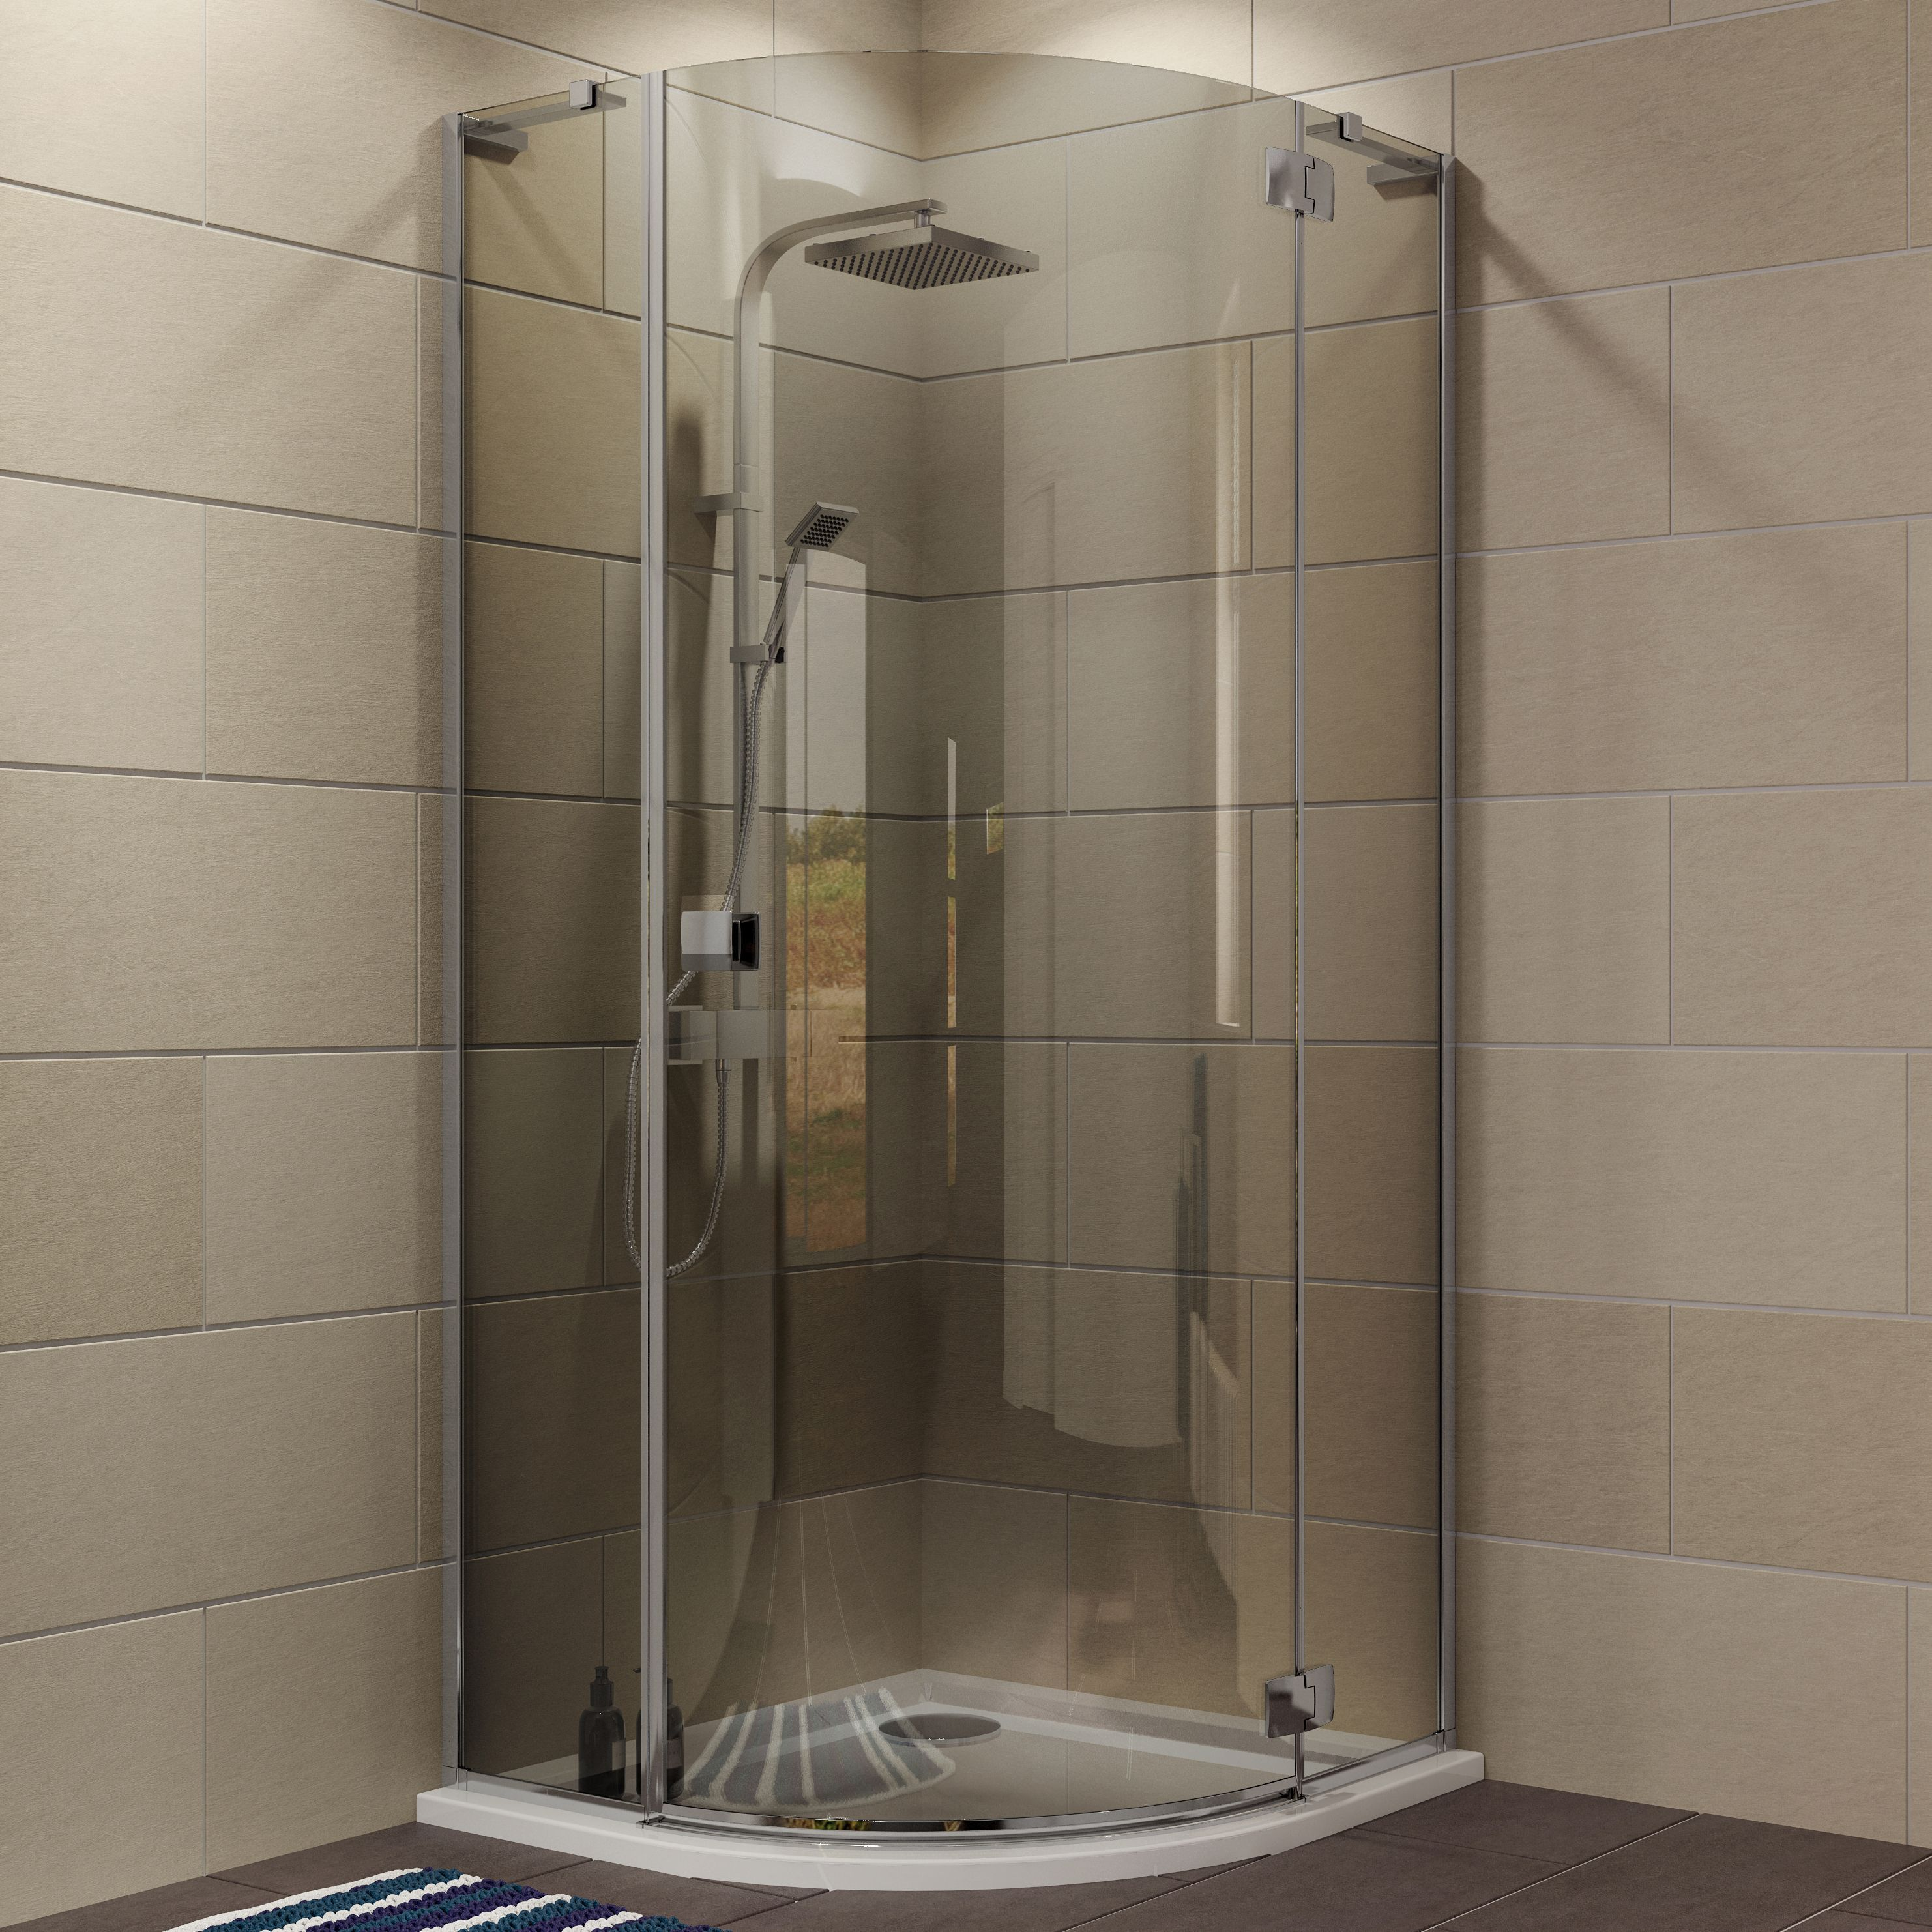 cooke u0026 lewis luxuriant quadrant shower enclosure with hinged door u0026 smoked glass w900mm d900mm departments diy at bu0026q